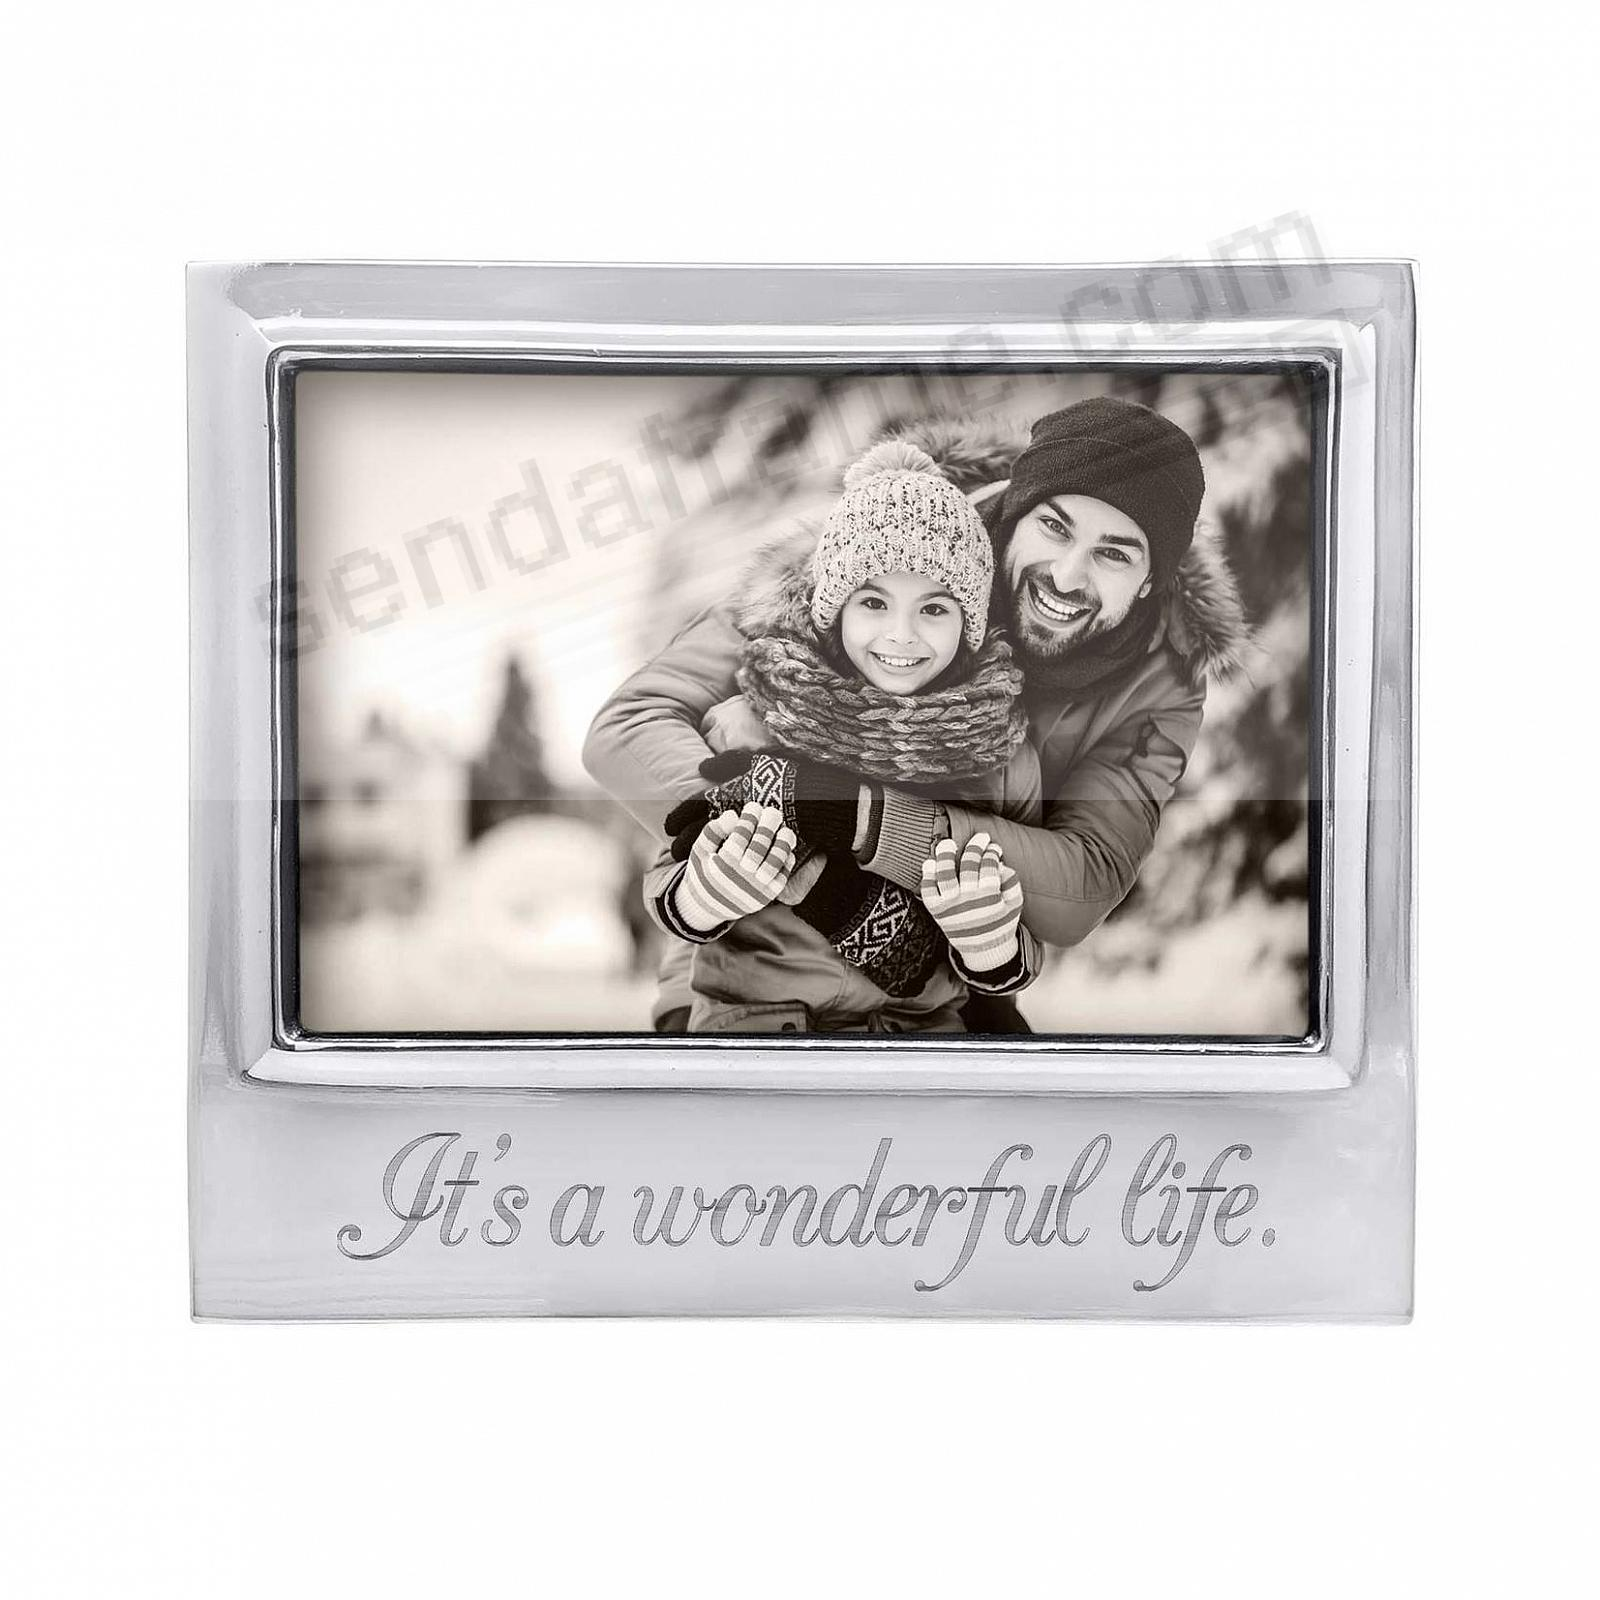 IT'S A WONDERFUL LIFE 6x4 SIGNATURE frame by Mariposa®